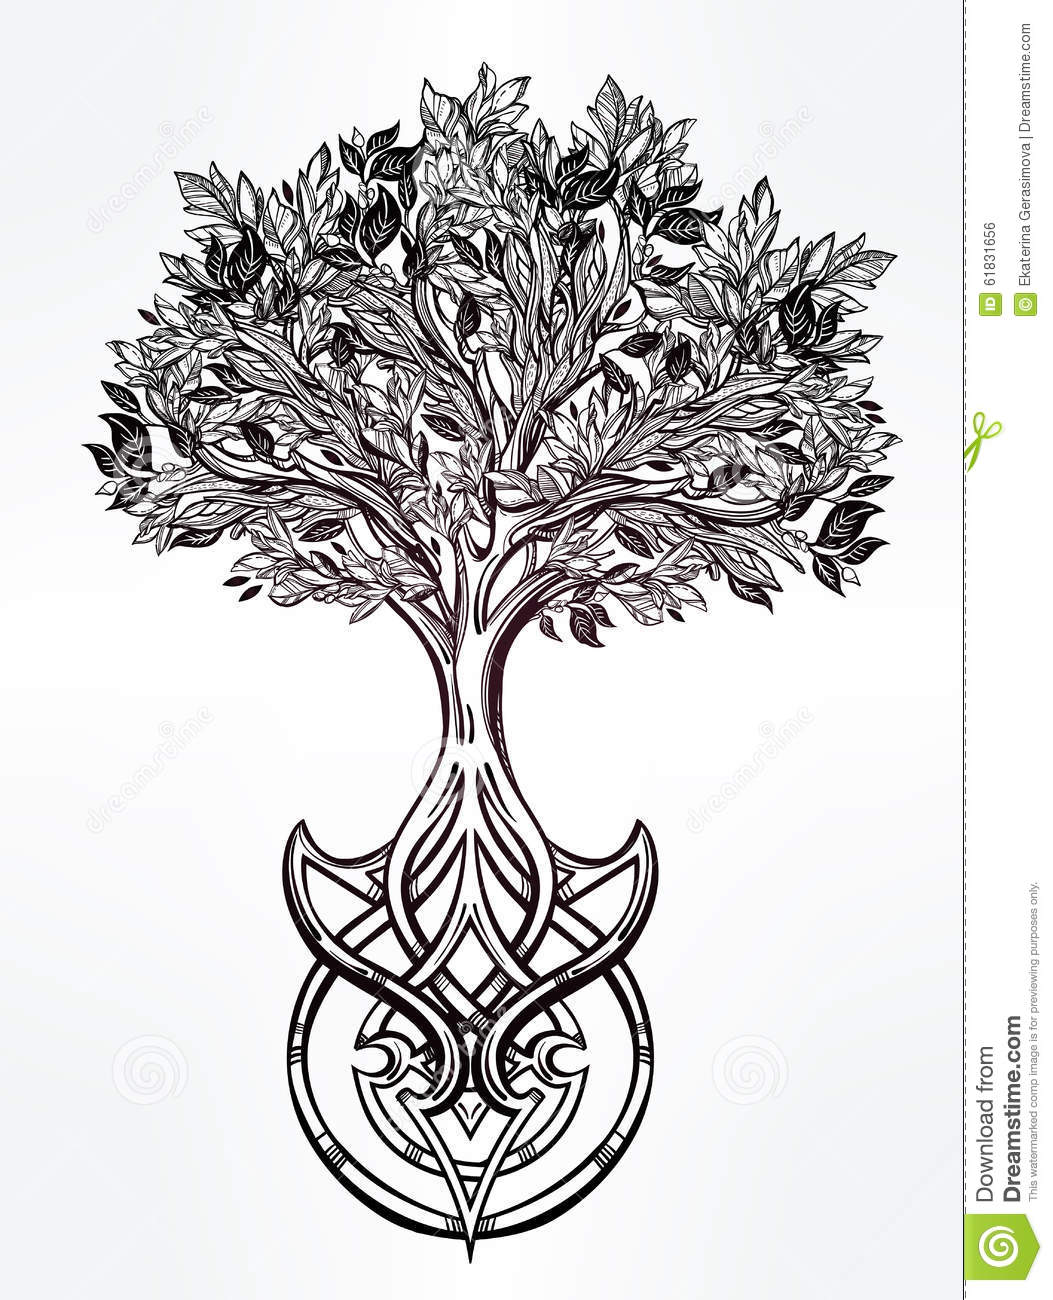 celtic tree of life illustration stock vector image 61831656. Black Bedroom Furniture Sets. Home Design Ideas